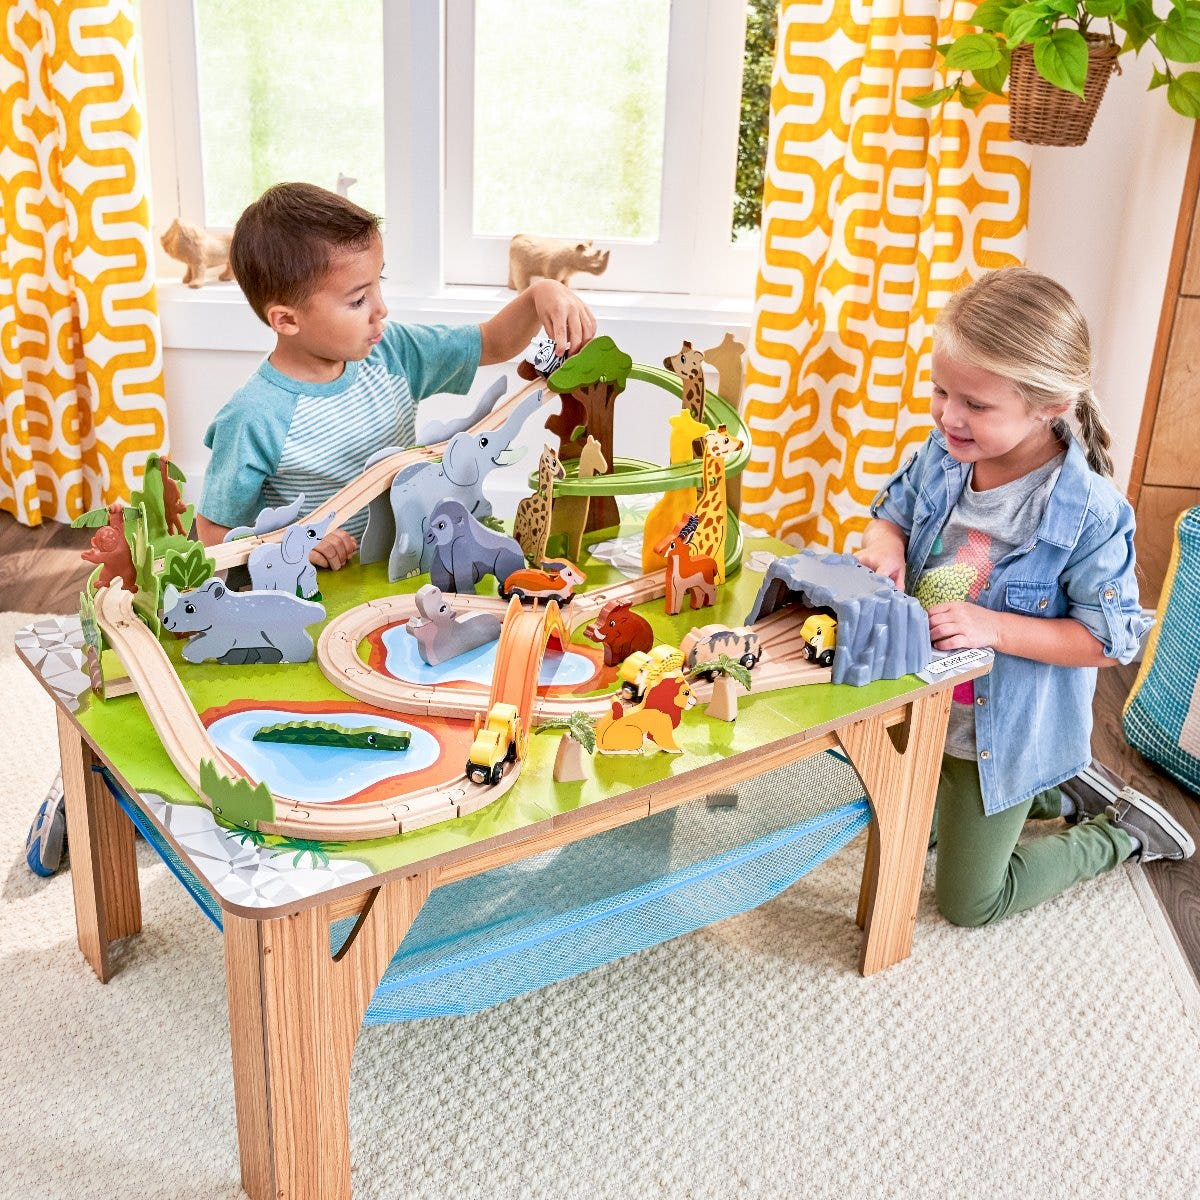 It's a Wild, Wild World: With 55 total pieces, the jungle can really come alive. Wooden track, trees, ponds and plenty of animals help kids create their own adventure.